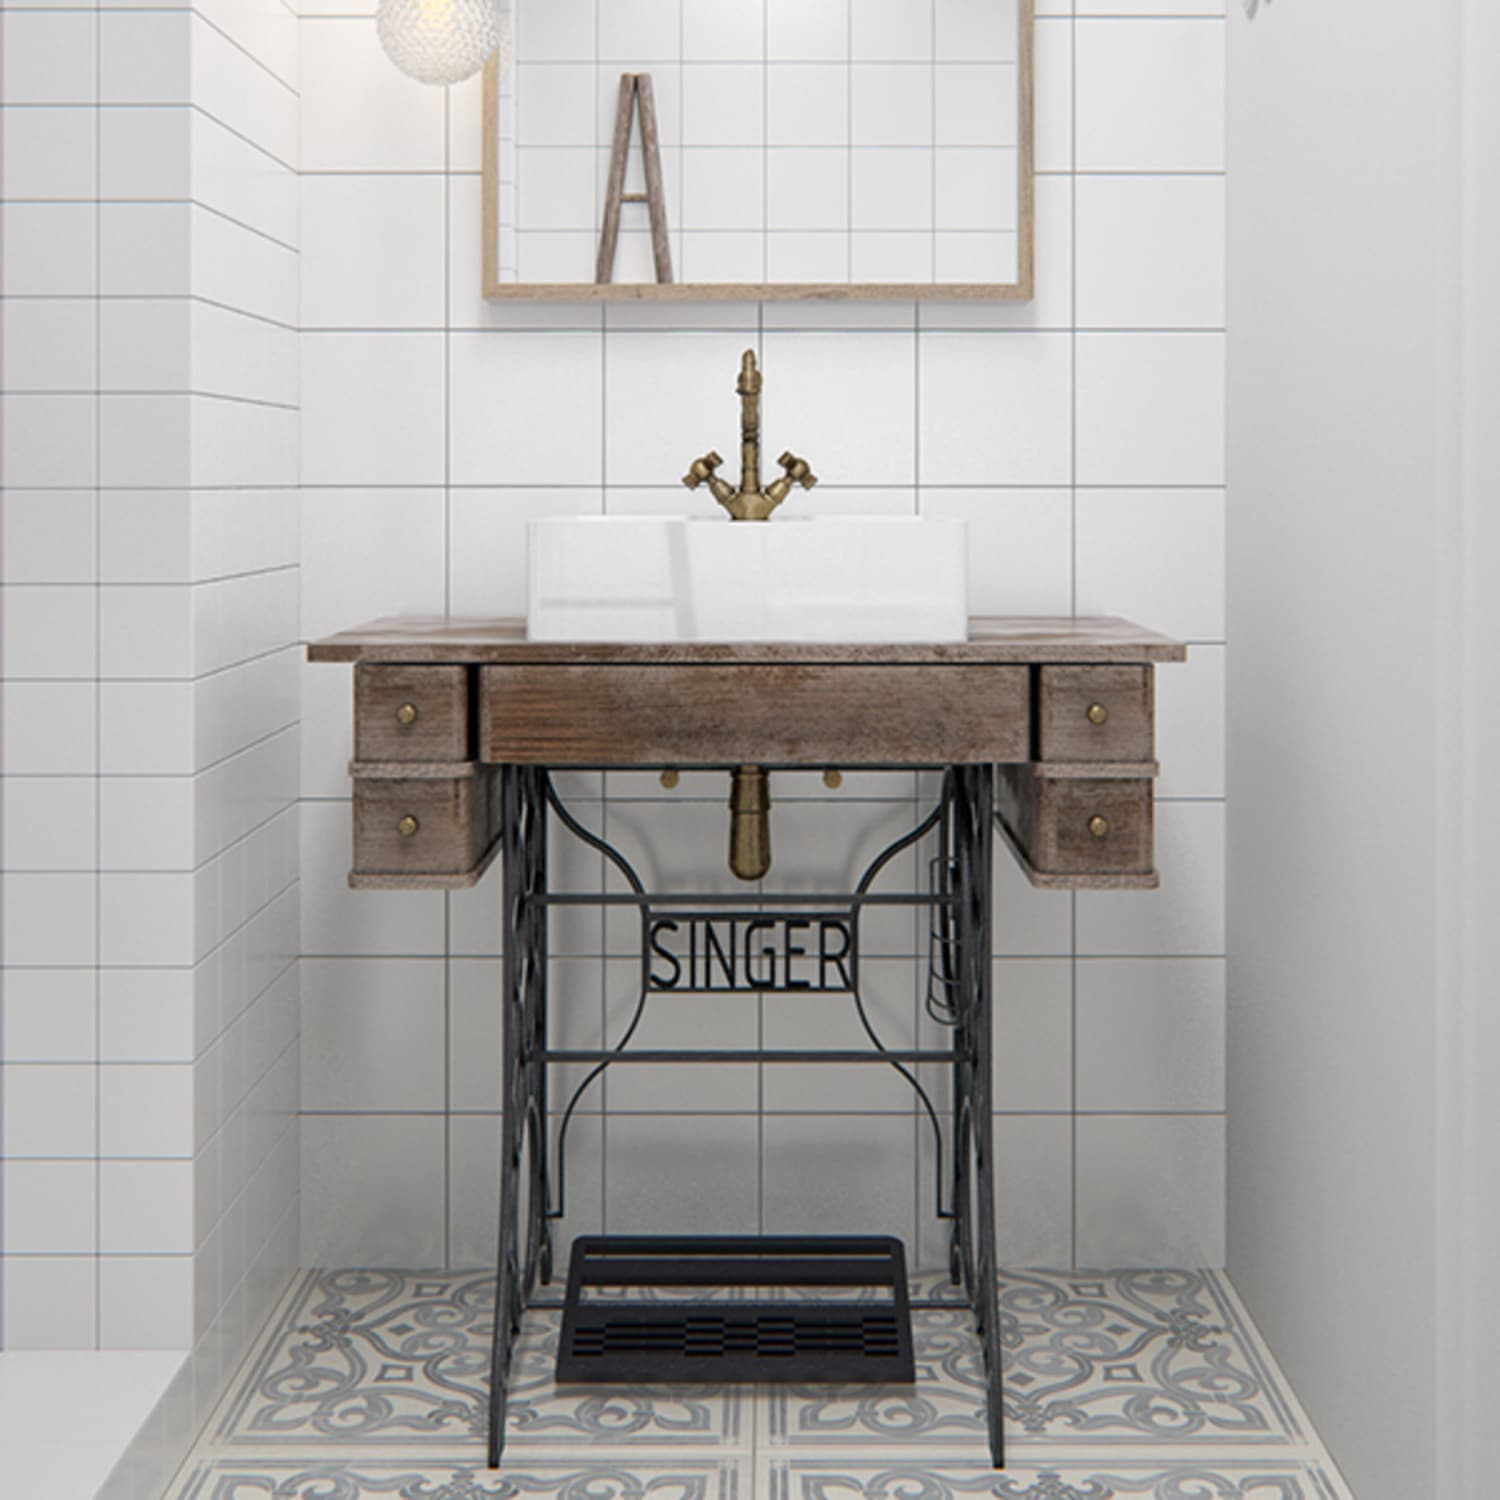 Bathroom Vanity Hacks For Small Spaces Apartment Therapy